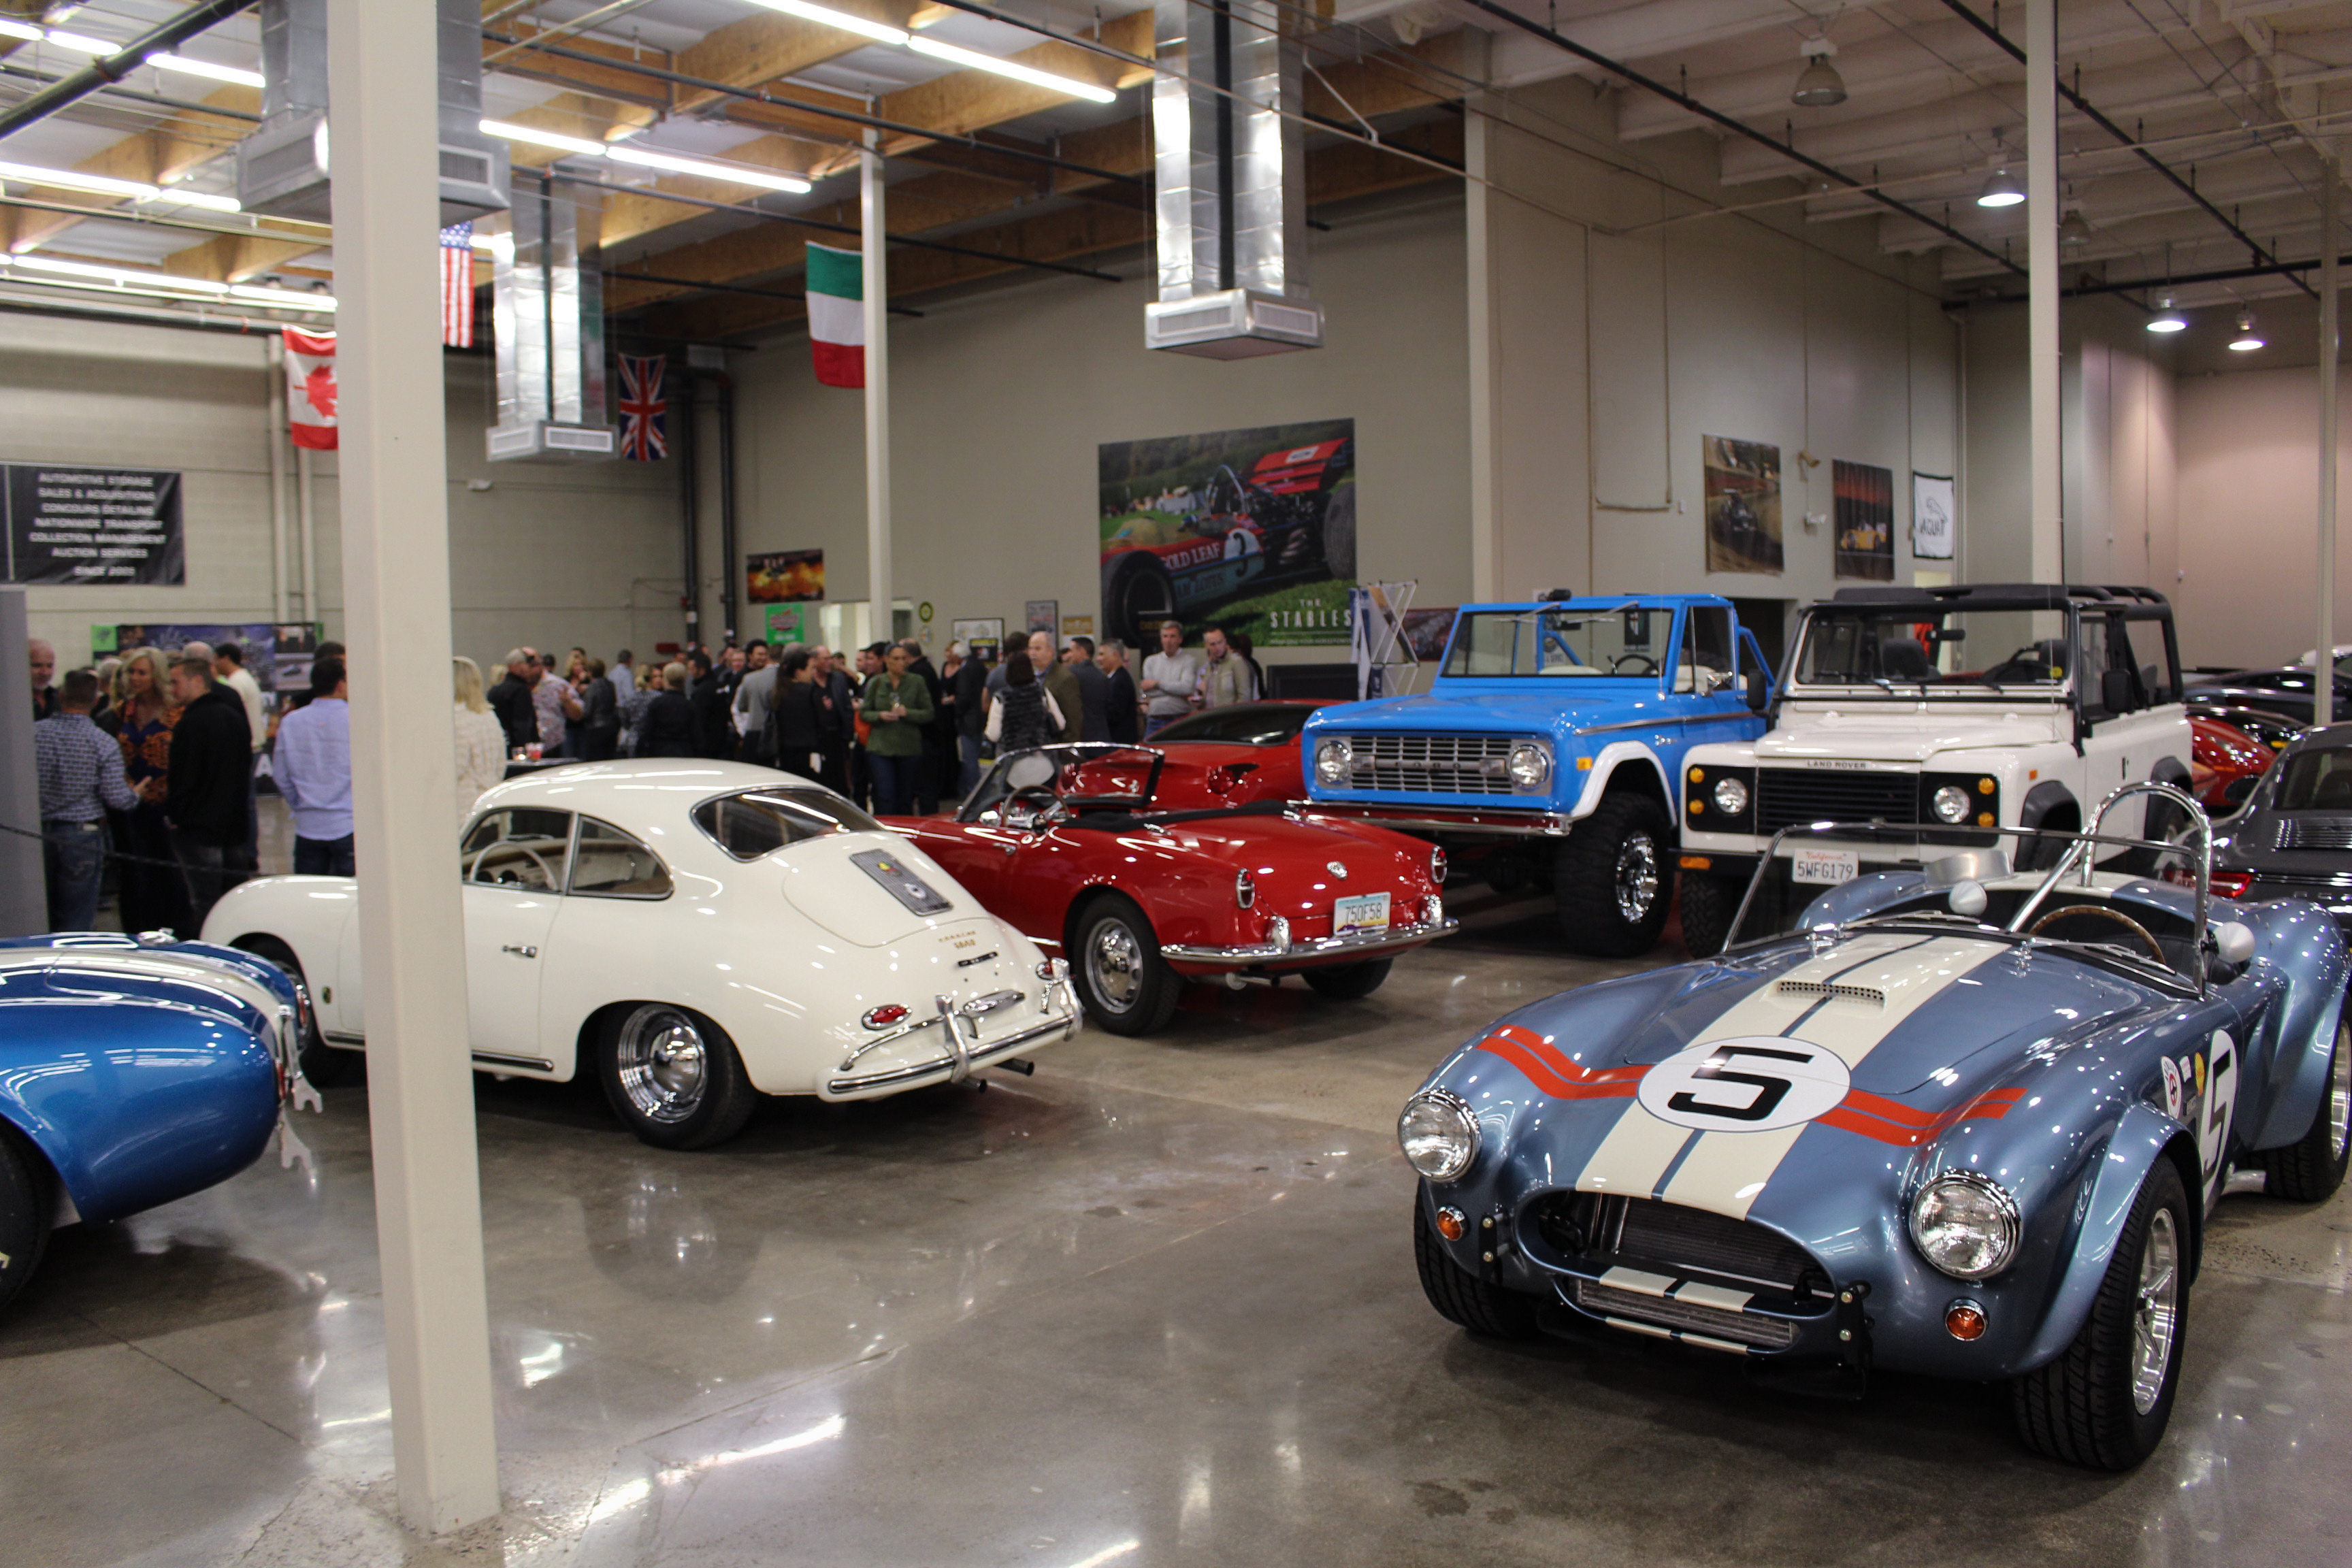 Gallery | Classic & Collectible vehicle storage, maintenance ...